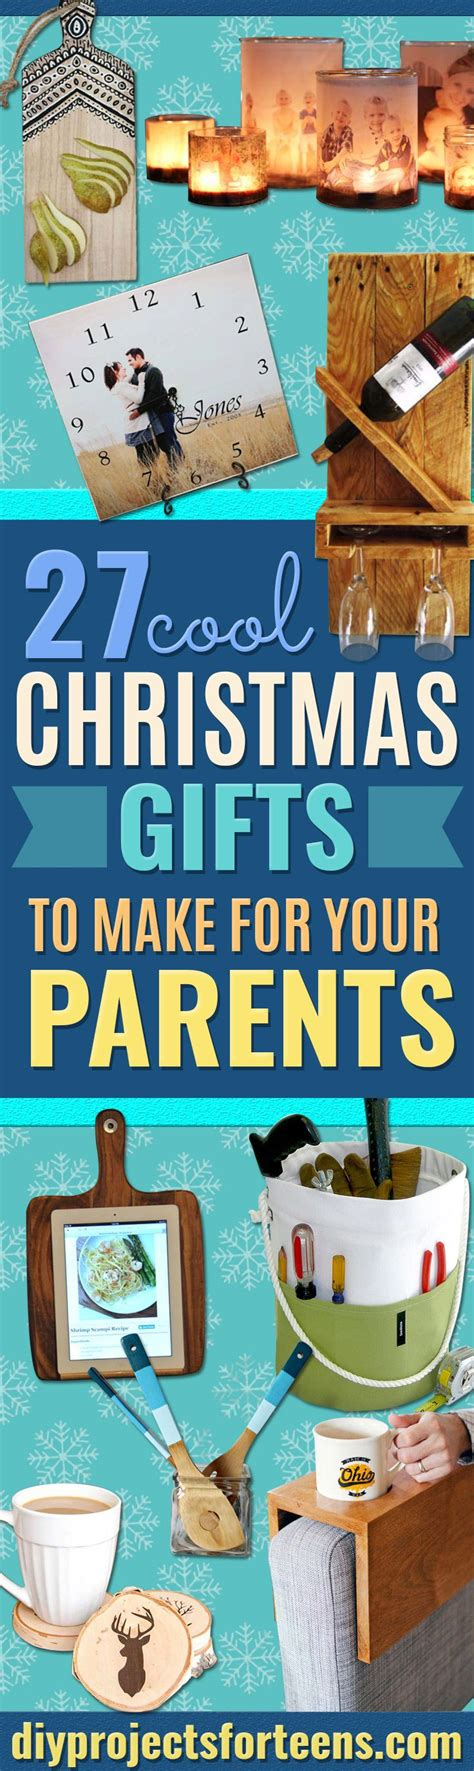 pictures unique christmas gift ideas for parents